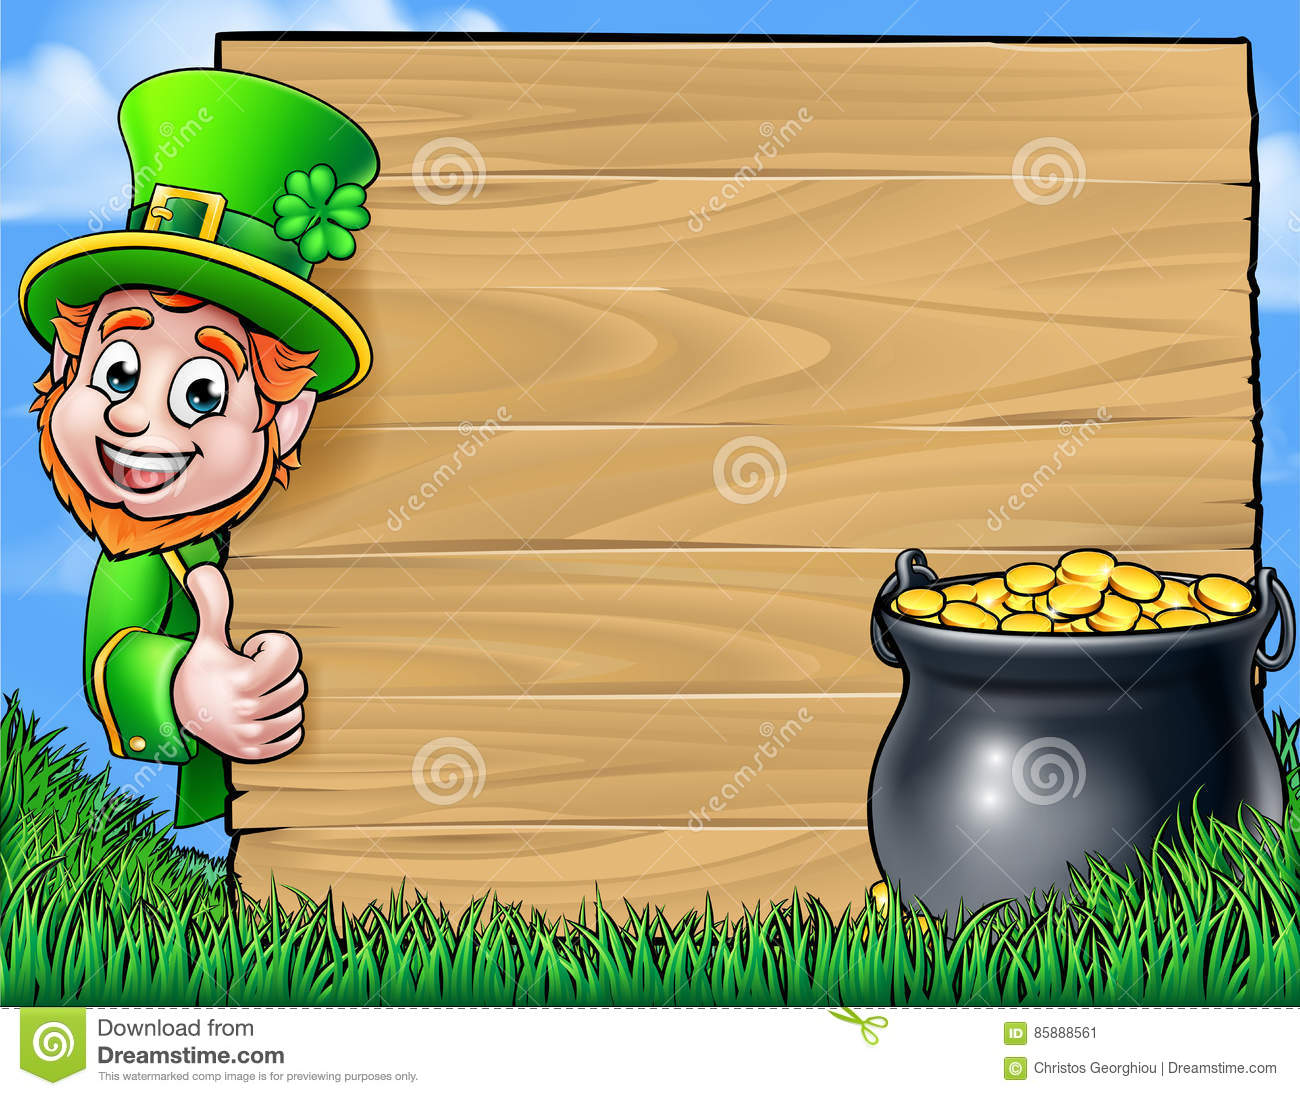 Uncategorized Leprechaun Background cartoon leprechaun st patricks day background sign stock vector royalty free download background